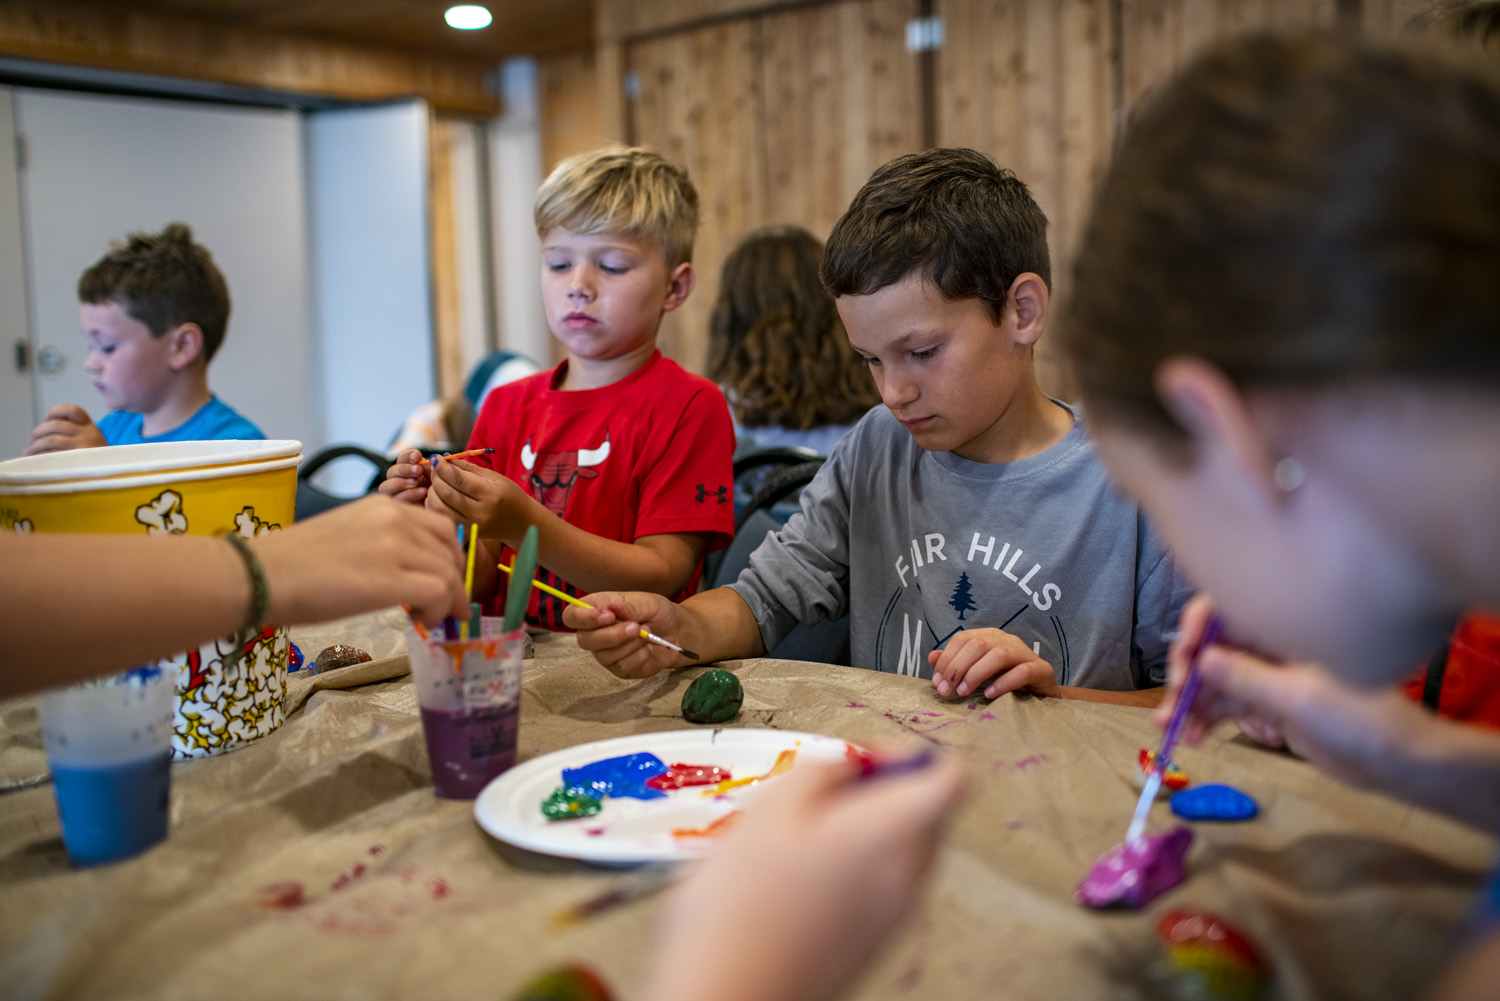 kids at arts and crafts activity